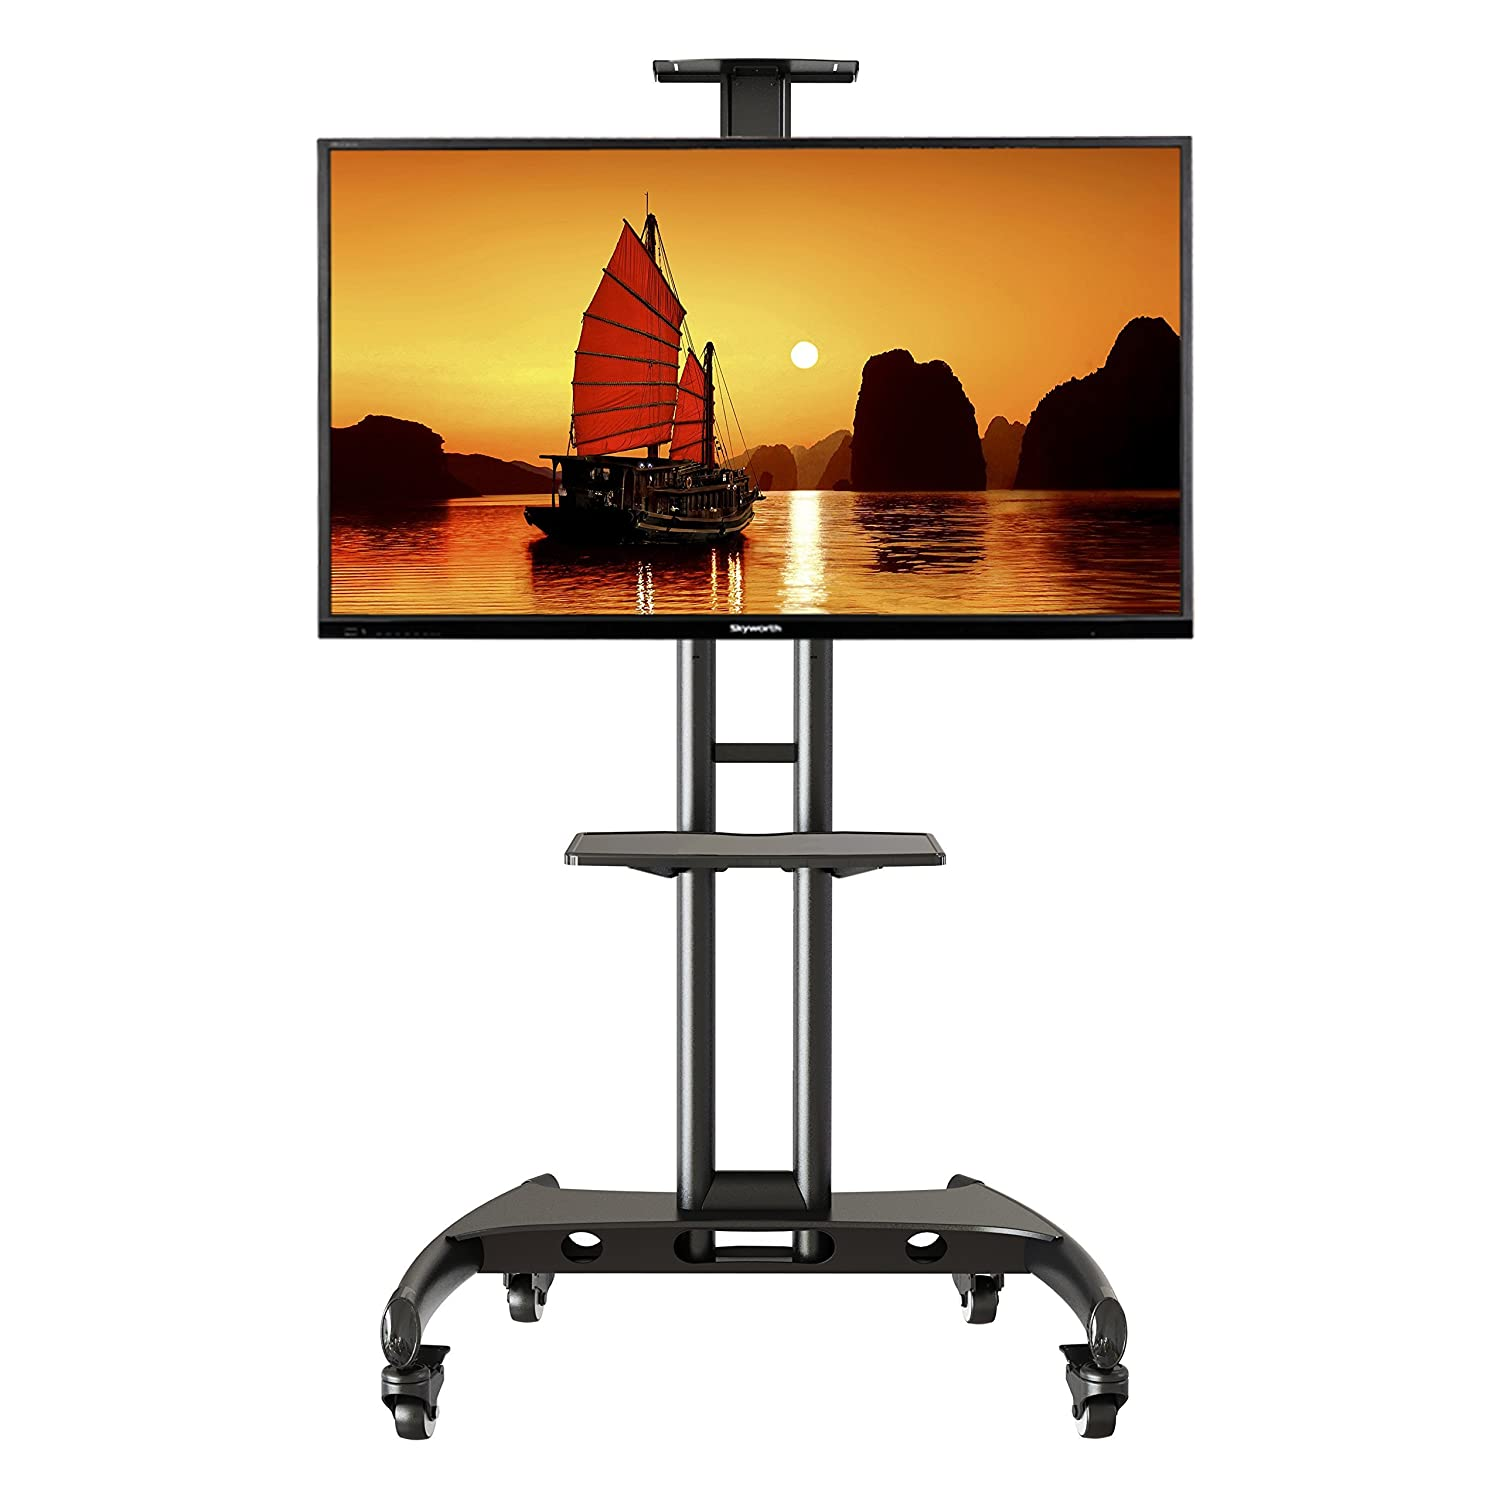 affordable nb avap pied roulettes rglable pour tv lcd led with plateau tournant pour tv conforama. Black Bedroom Furniture Sets. Home Design Ideas